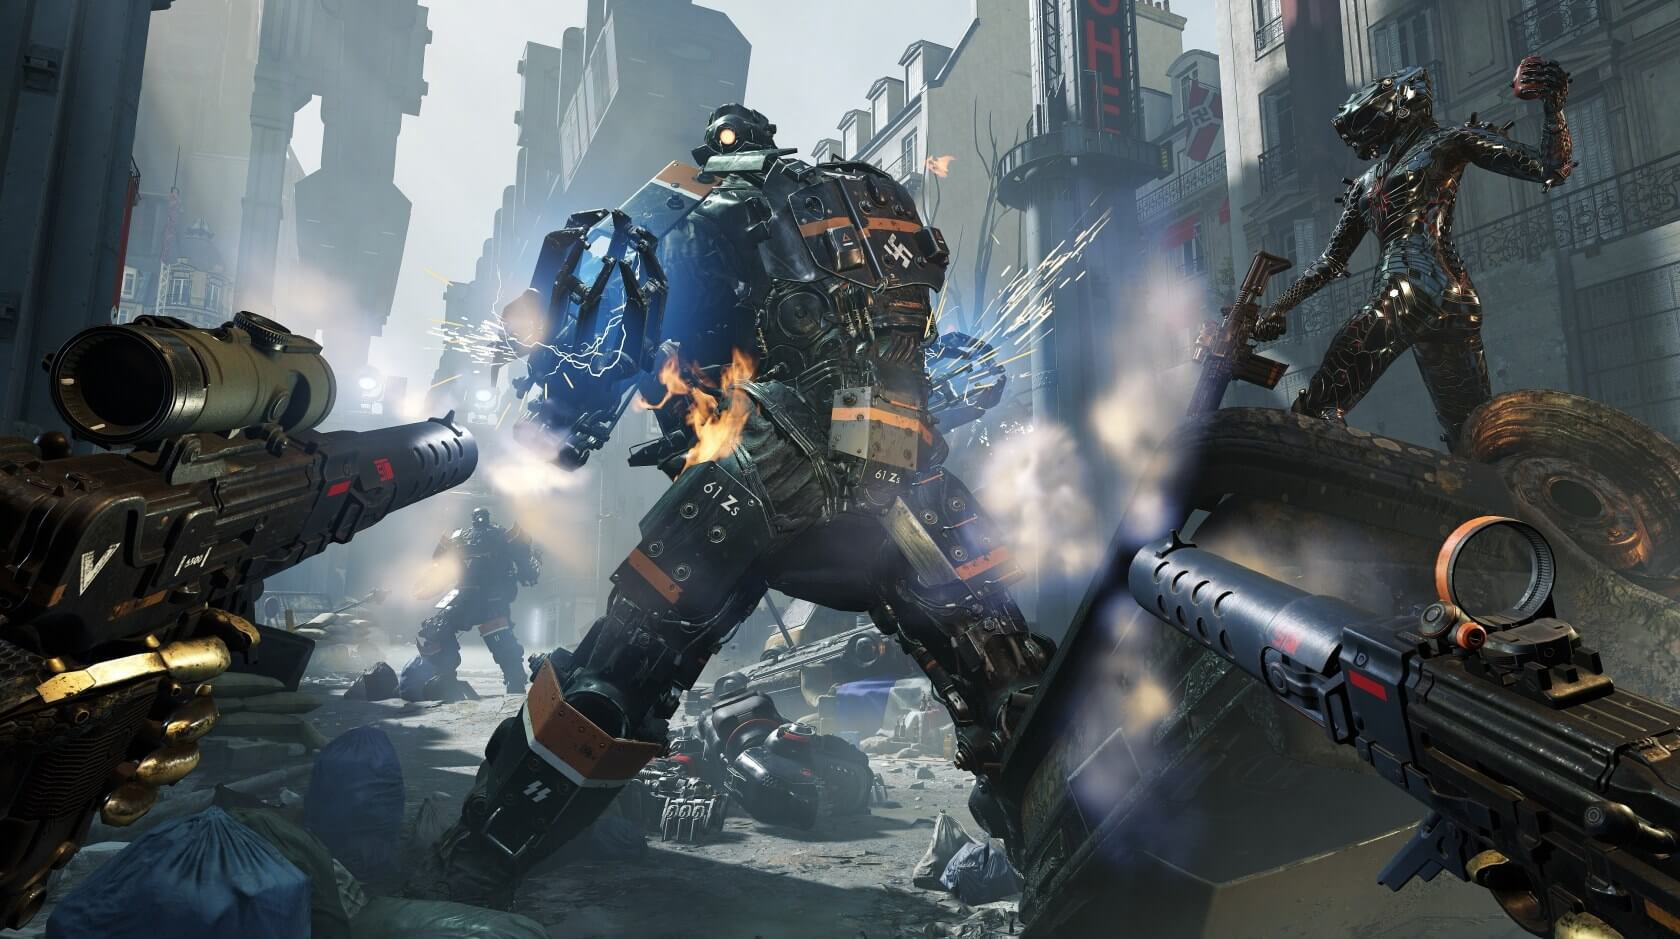 Wolfenstein: Youngblood arrives a day early for PC players